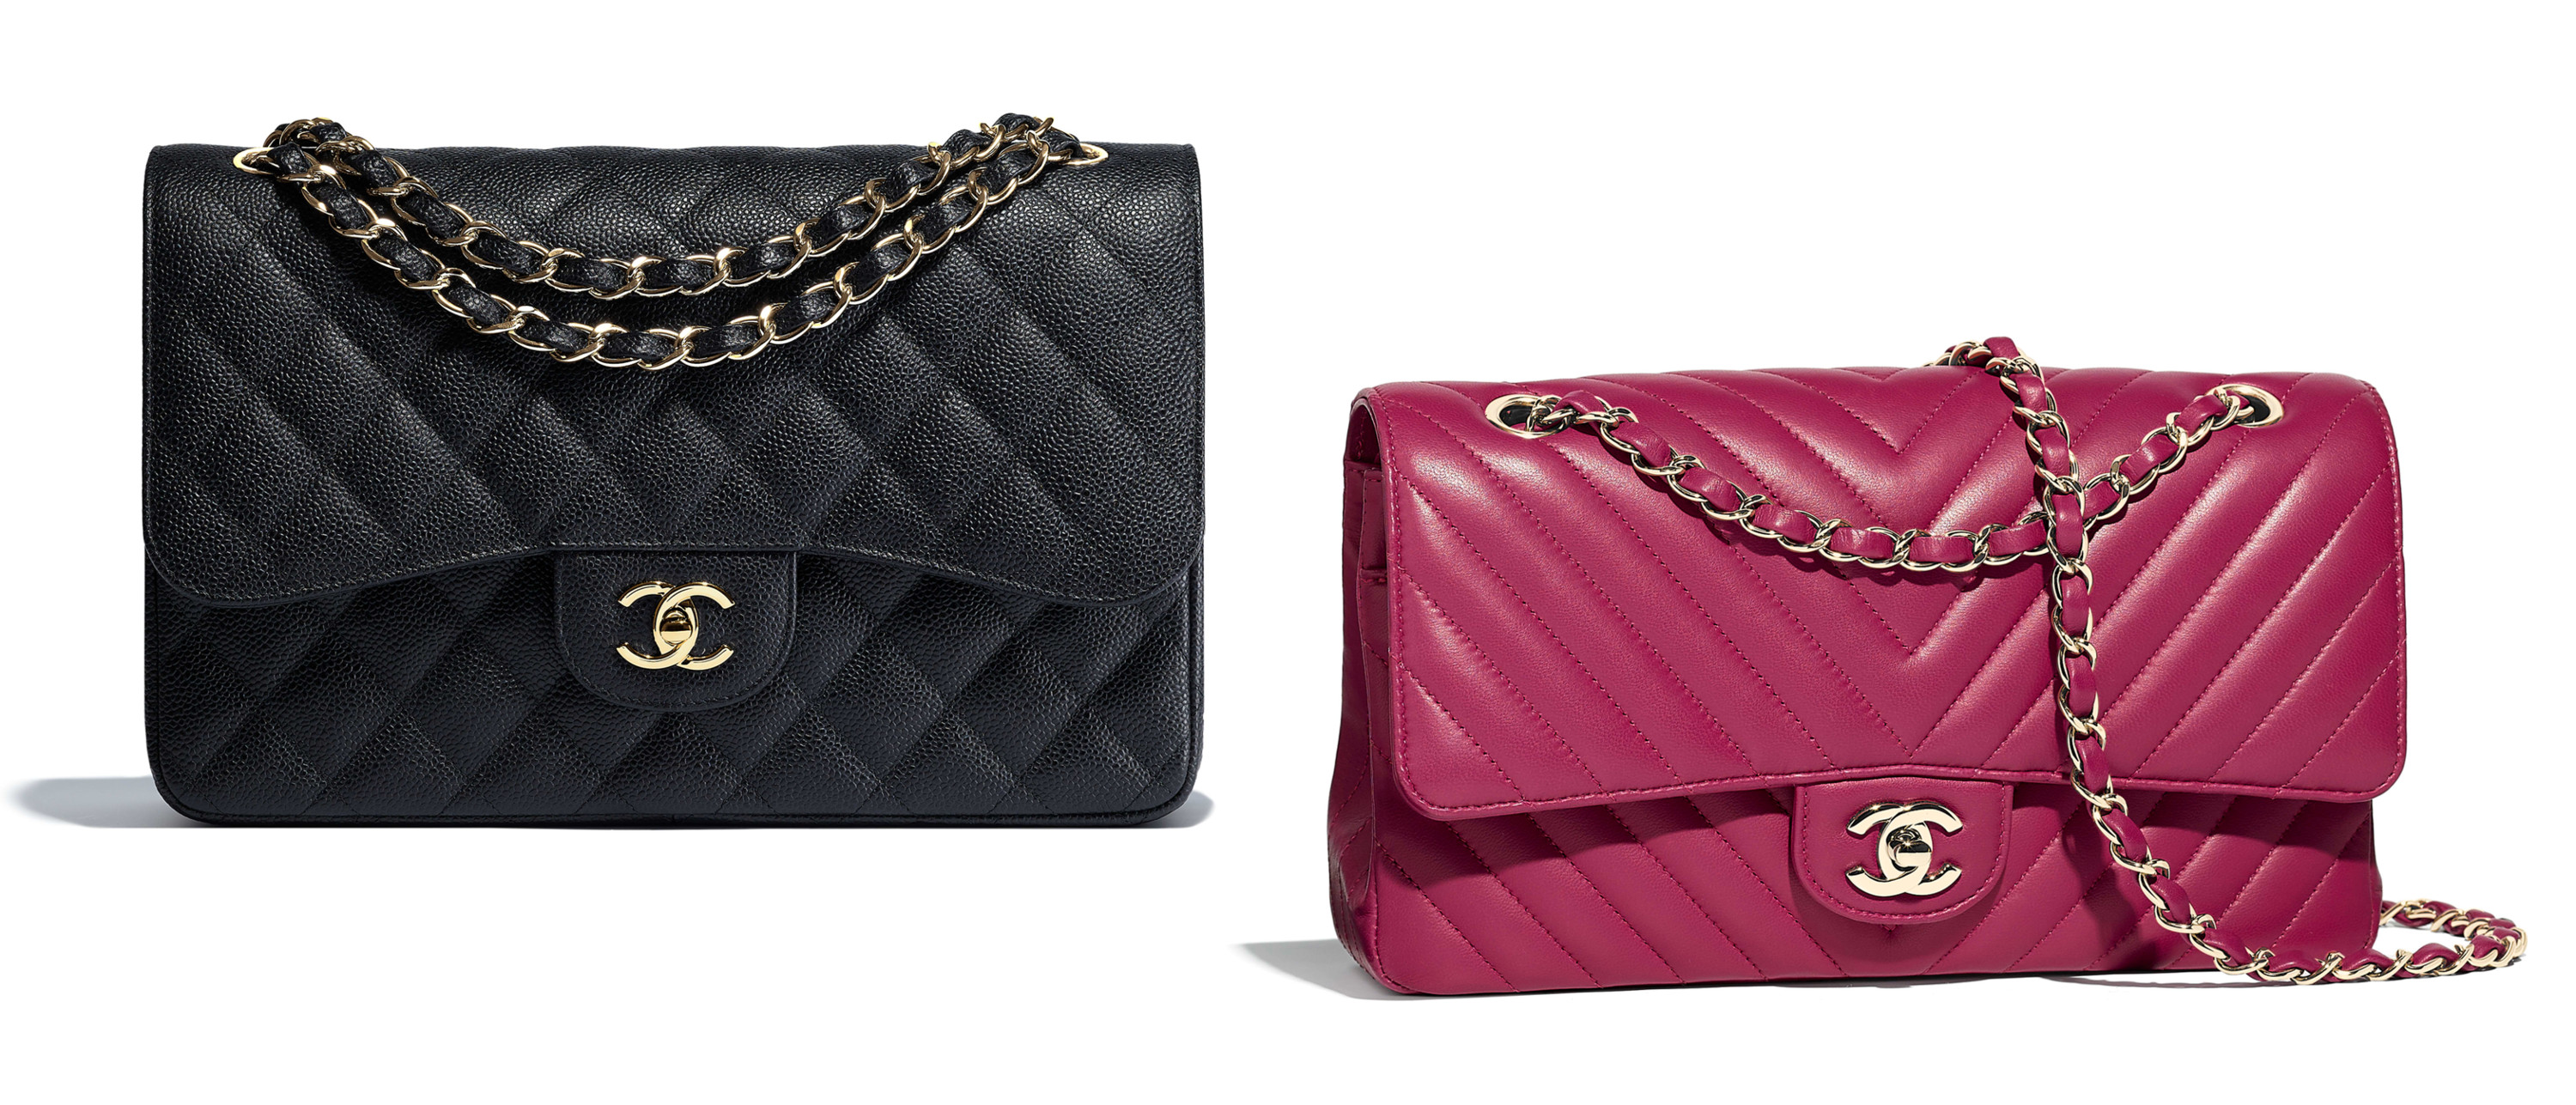 2e846c8b82f7 Get Your Chanel Bag On - Classic Flaps and Boy Bag Price Increase |  Lollipuff